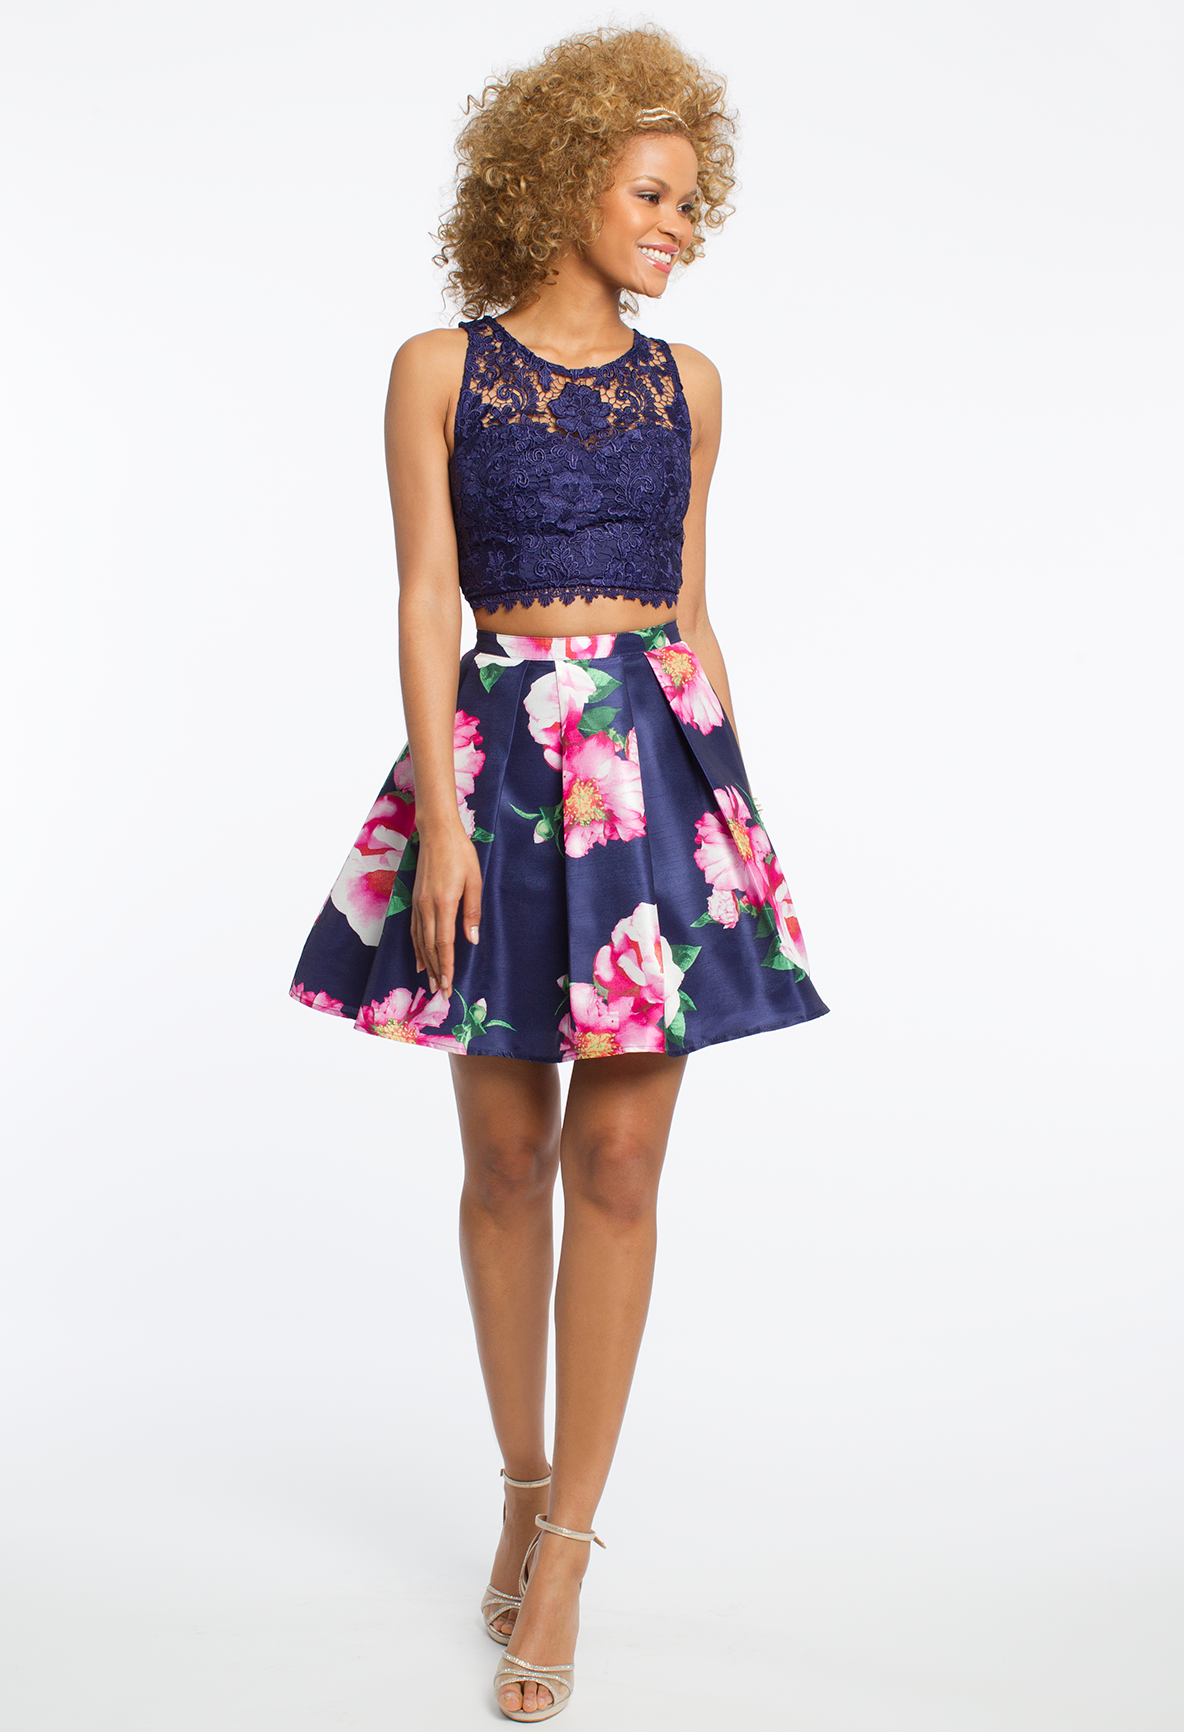 lace crop top and floral skirt twopiece dress